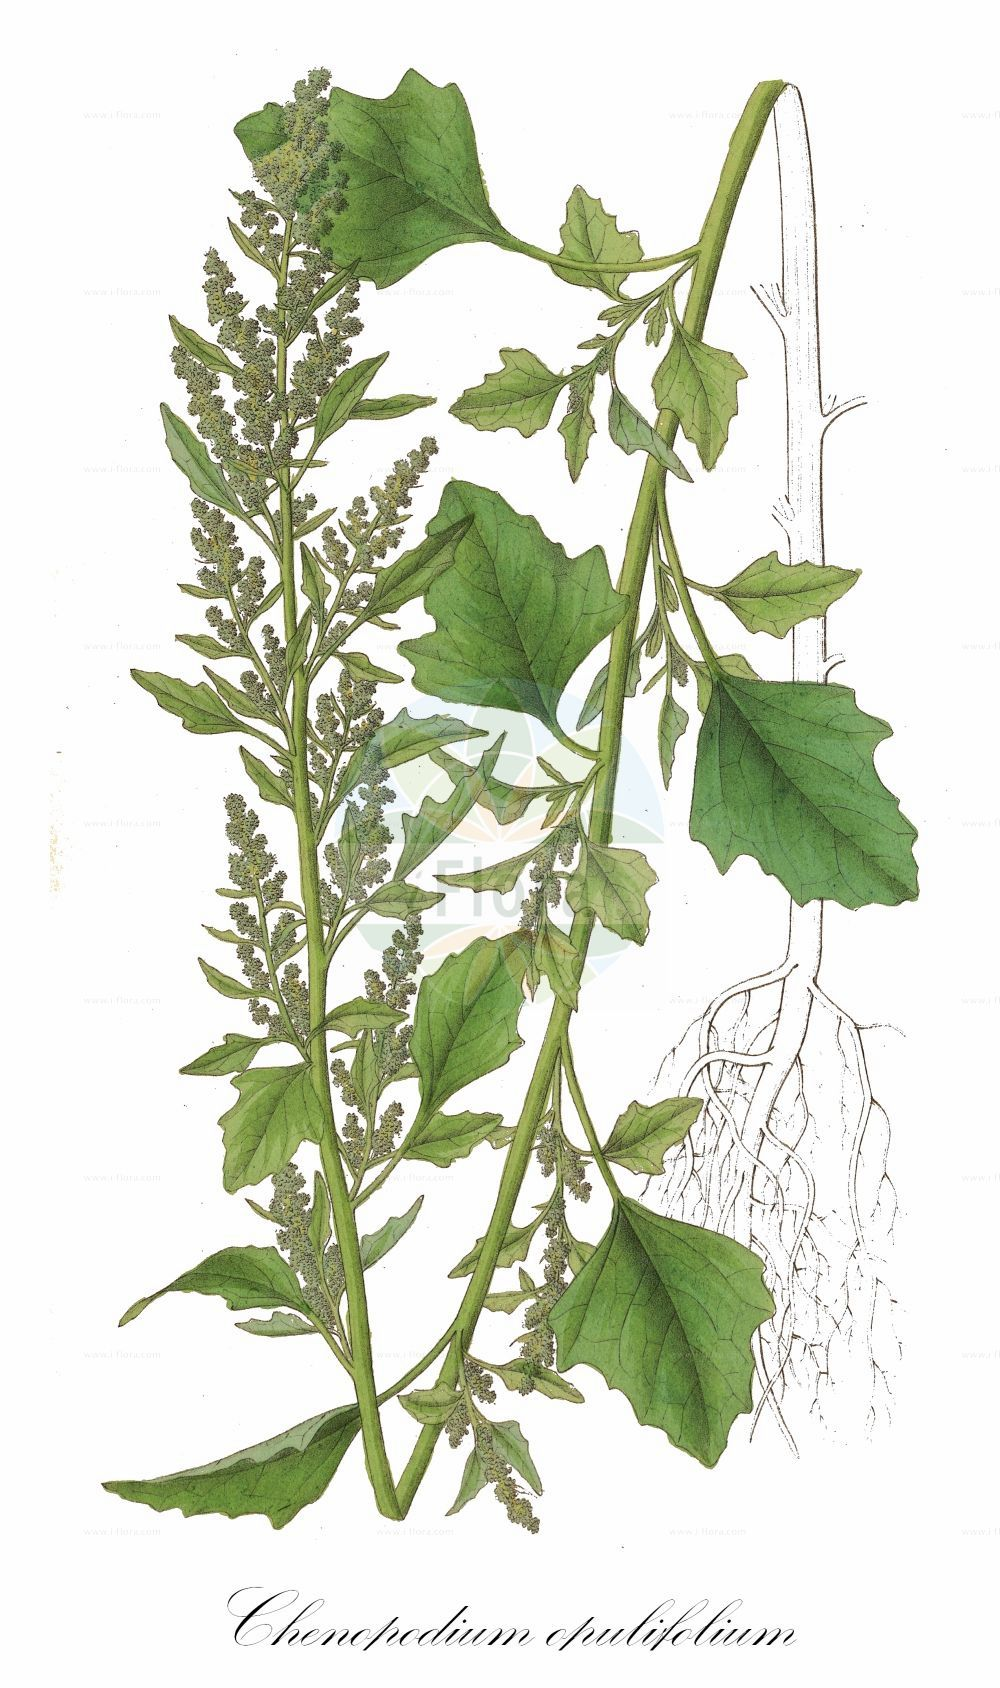 Historische Abbildung von Chenopodium opulifolium (Schneeballblaettriger Gaensefuss - Grey Goosefoot). Das Bild zeigt Blatt, Bluete, Frucht und Same. ---- Historical Drawing of Chenopodium opulifolium (Schneeballblaettriger Gaensefuss - Grey Goosefoot).The image is showing leaf, flower, fruit and seed.(Chenopodium opulifolium,Schneeballblaettriger Gaensefuss,Grey Goosefoot,Seaport Goosefoot,Round-leaved Goosefoot,Chenopodium,Gaensefuss,Goosefoot,Amaranthaceae,Fuchsschwanzgewaechse,Pigweed family,Blatt,Bluete,Frucht,Same,leaf,flower,fruit,seed,Dietrich (1833-1844))